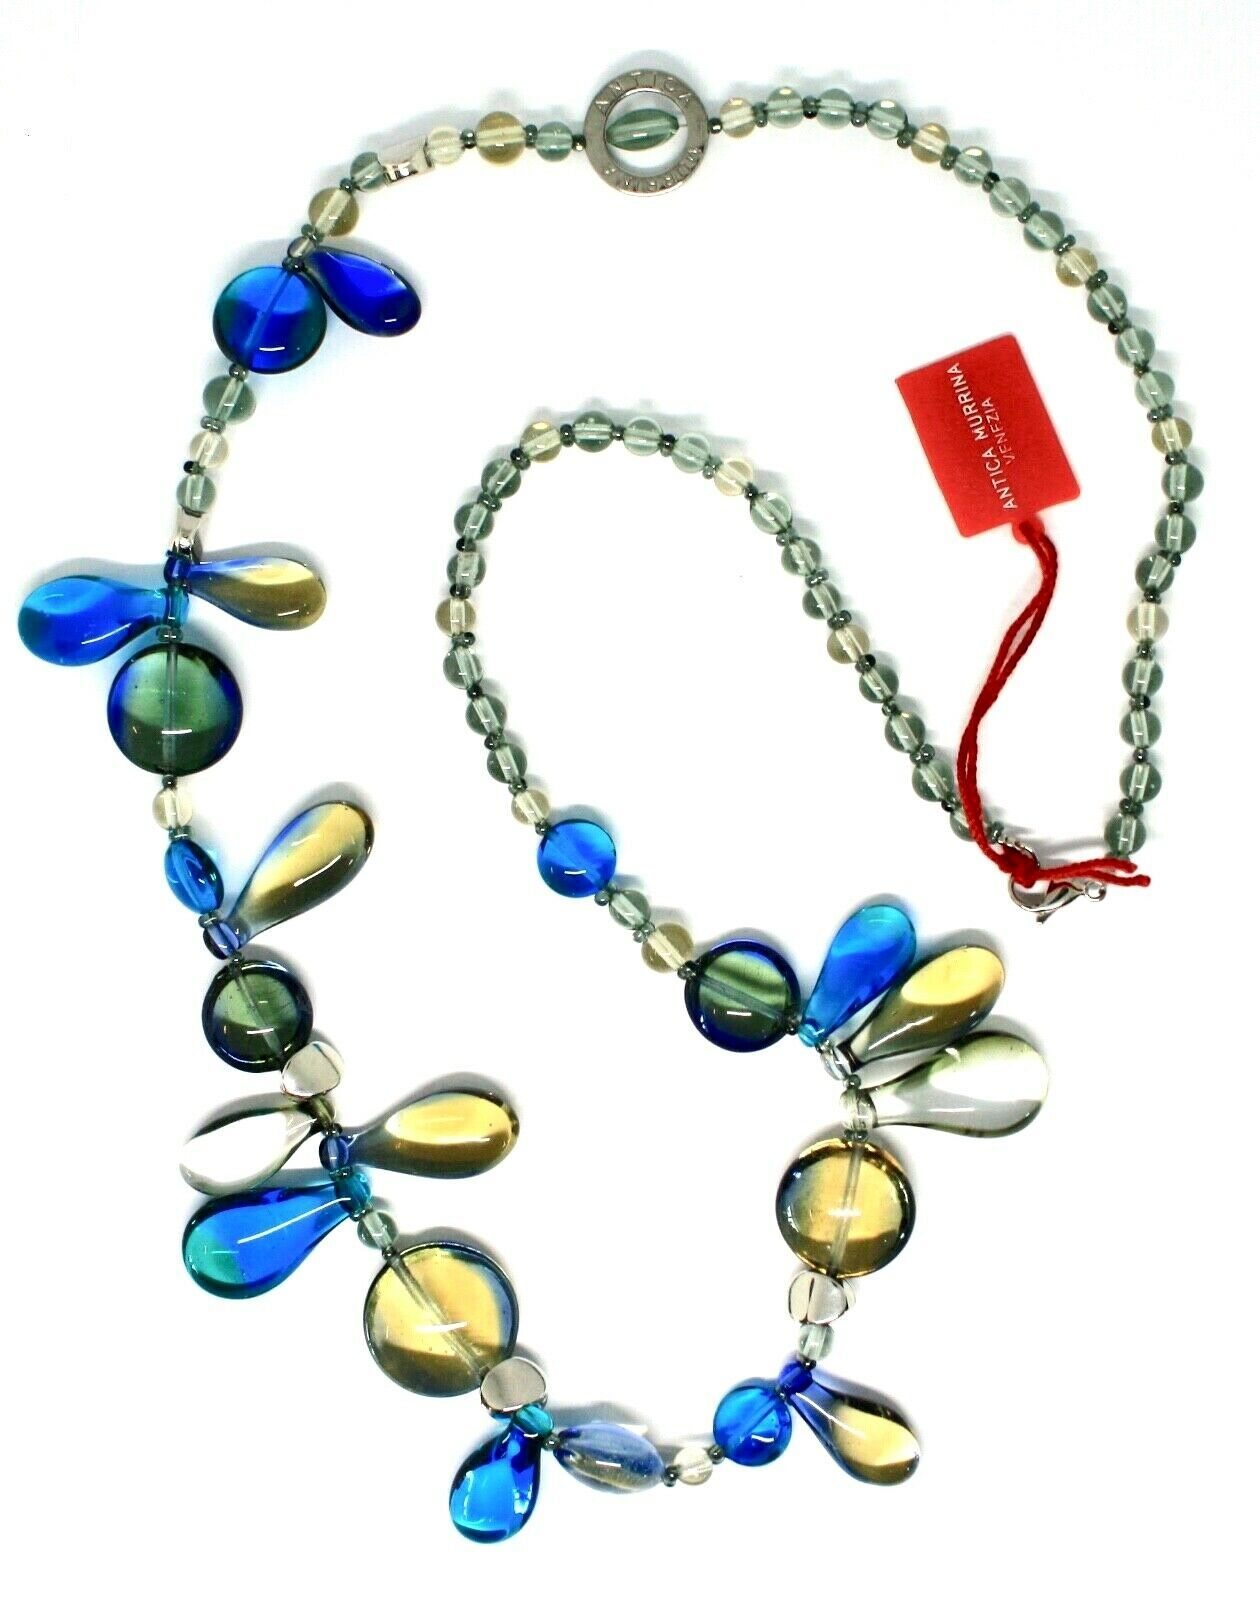 Necklace Antica Murrina Venezia with Murano Glass Lapilli Blue Grey CO692A07